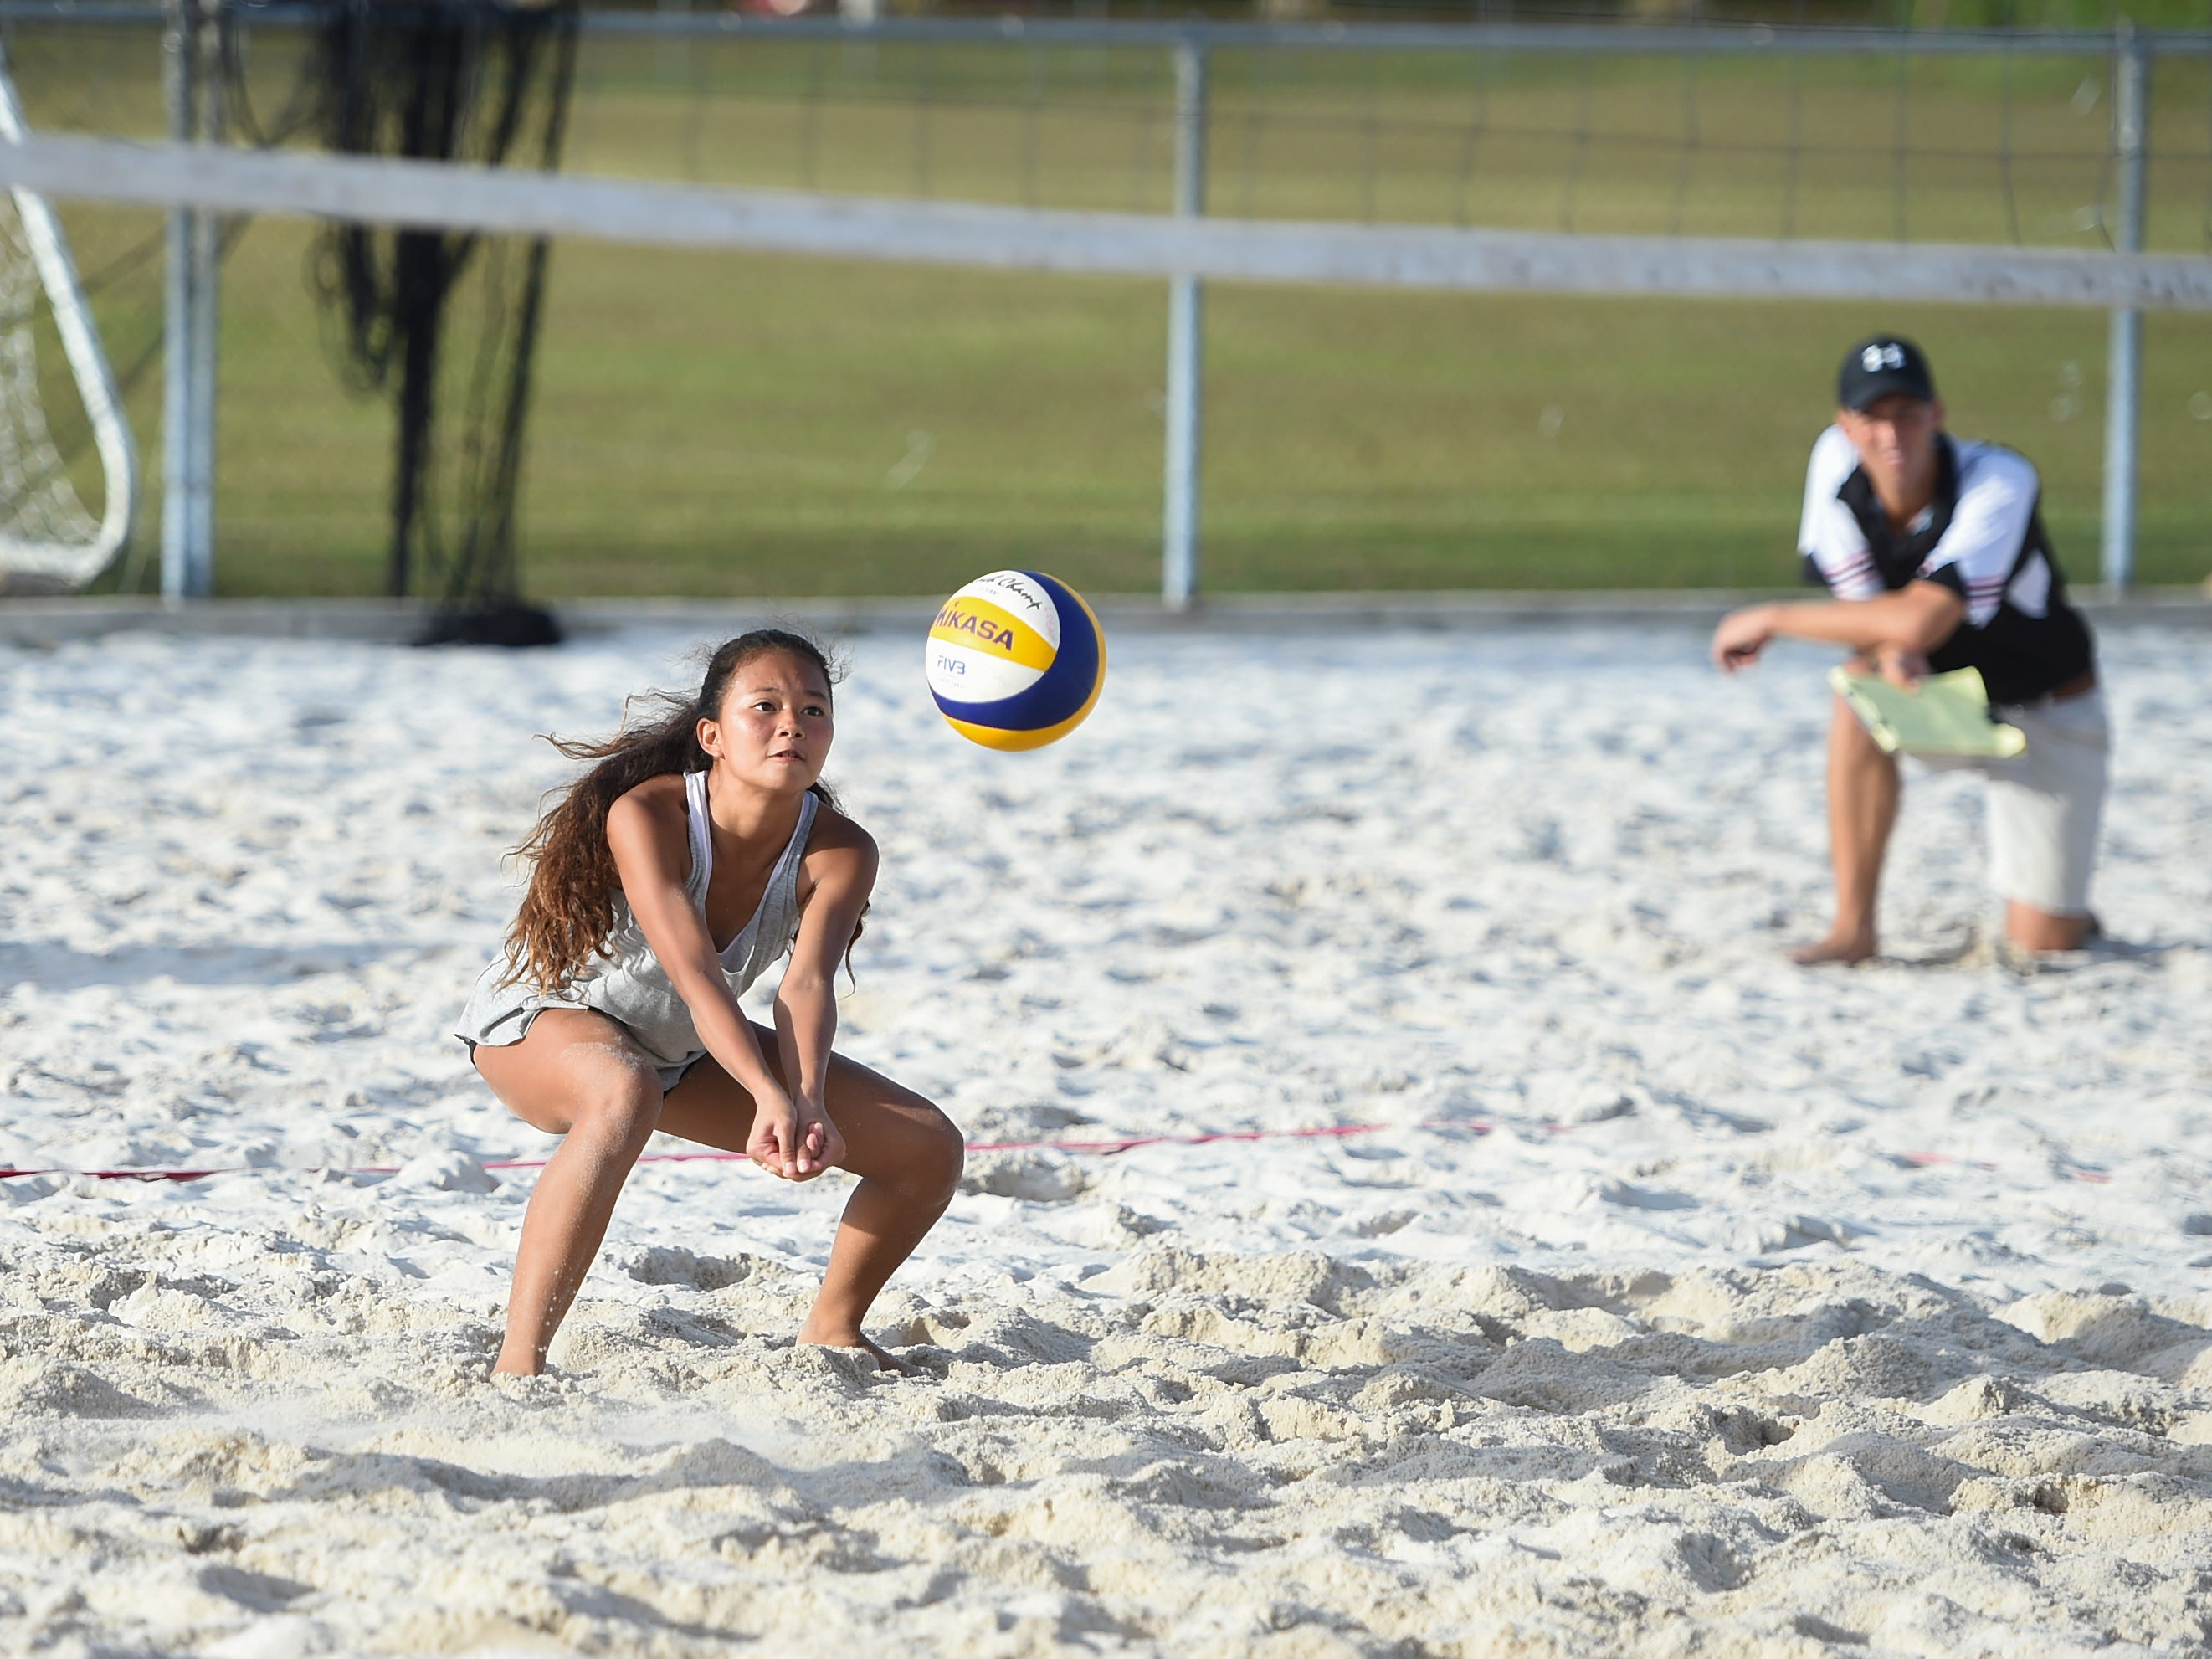 Yasmeen Lopez competes during the IIAAG Beach Volleyball championship game at the Guam Football Association National Training Center in Dededo, March 12, 2019.